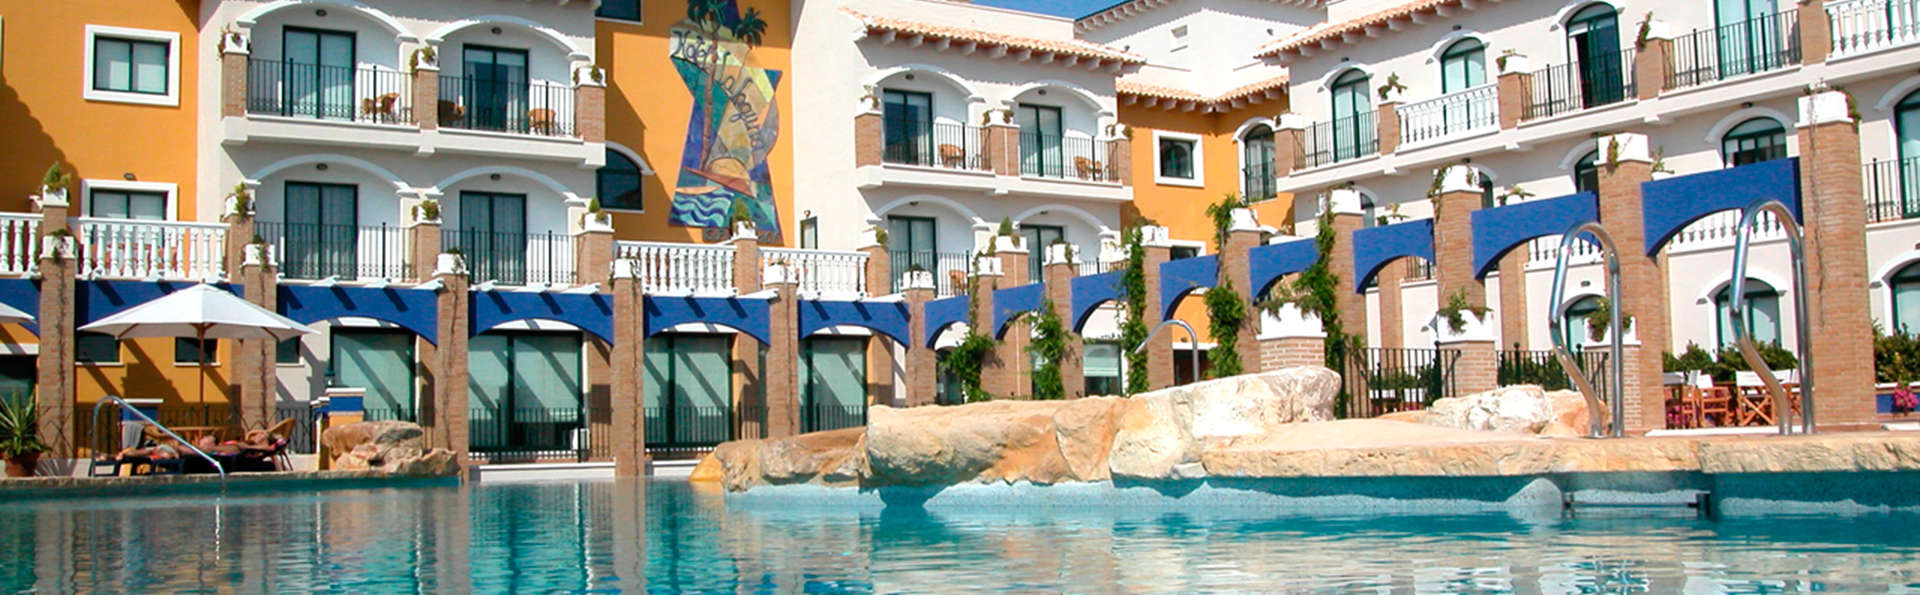 Hotel La Laguna Spa & Golf - EDIT_pool.jpg